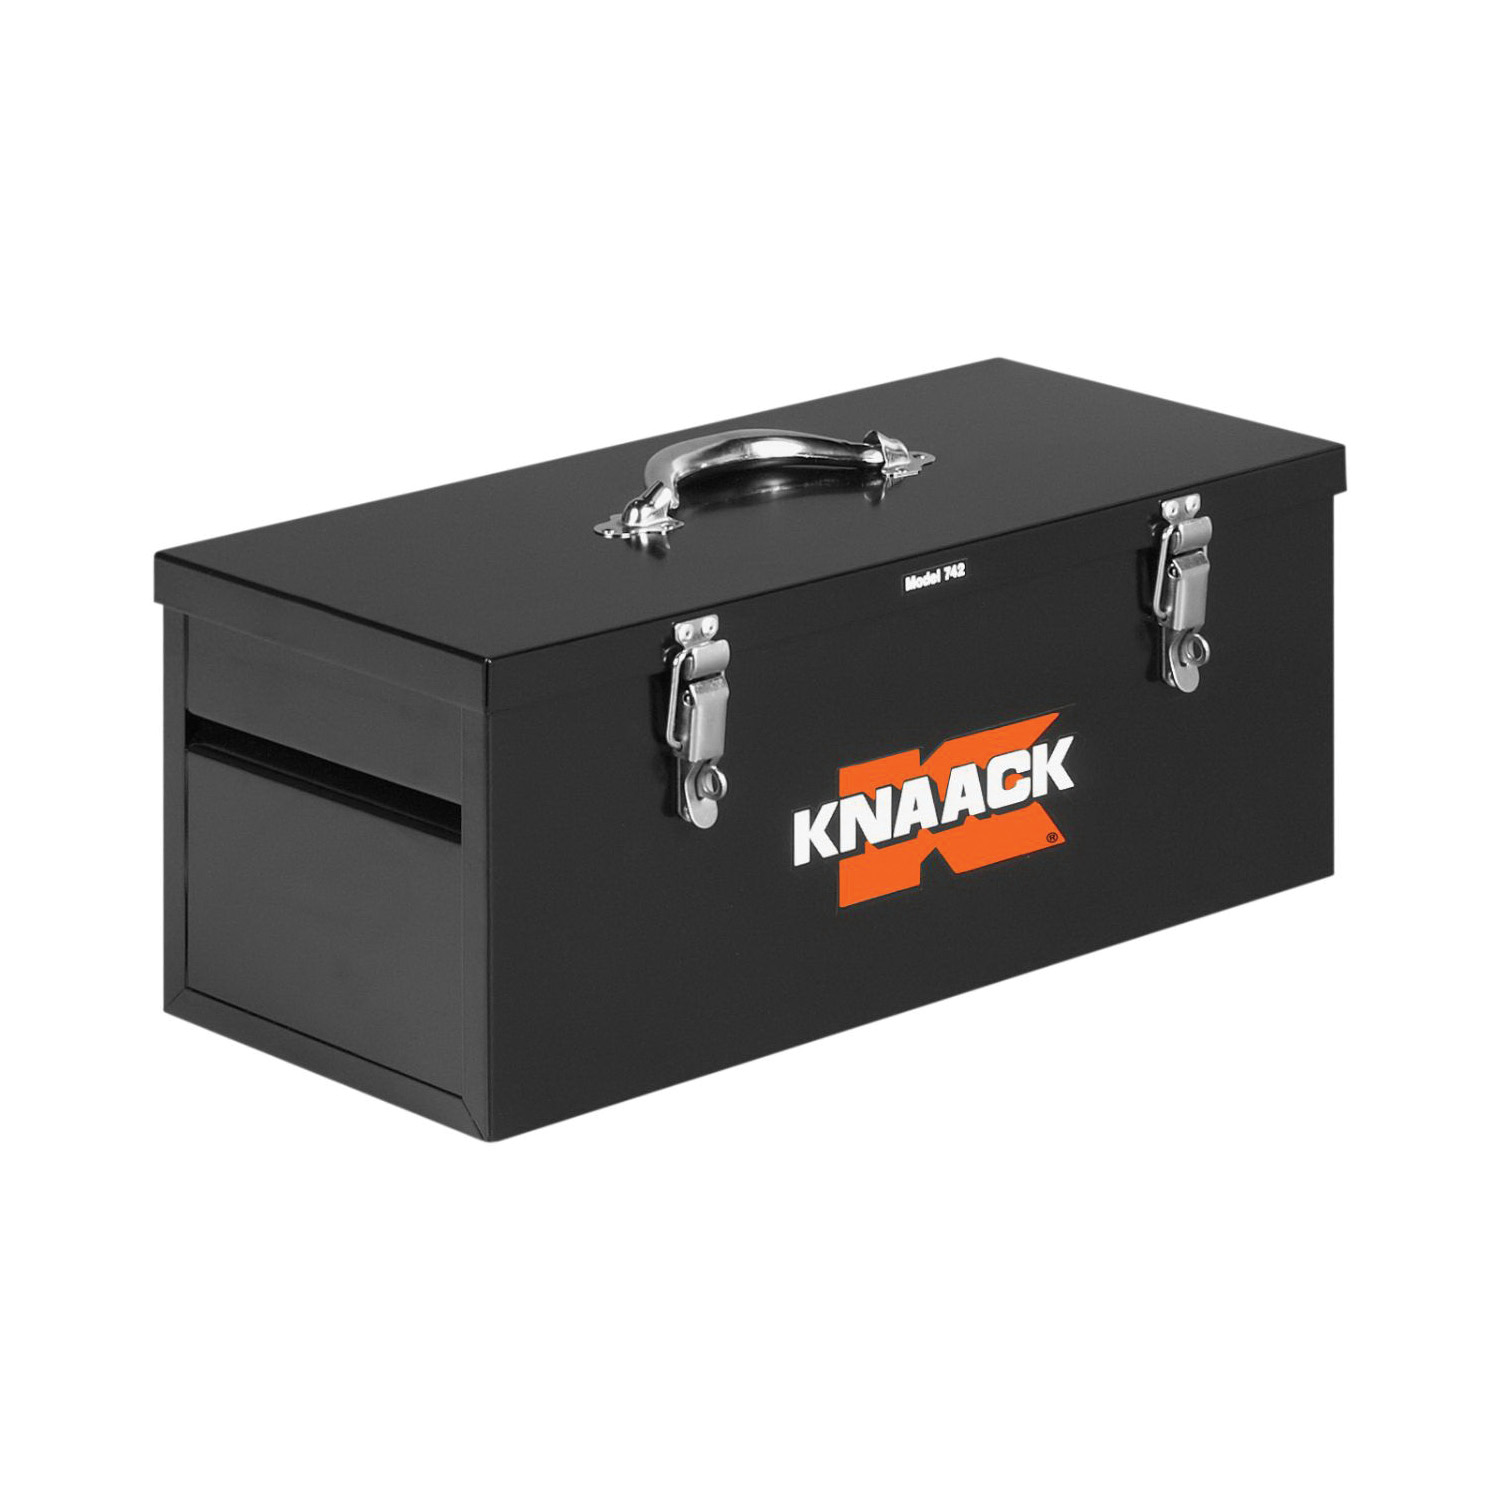 KNAACK® 742 Hand Tool Box, 9 in x 9 in W x 22 in D, 1 cu-ft Storage, Steel